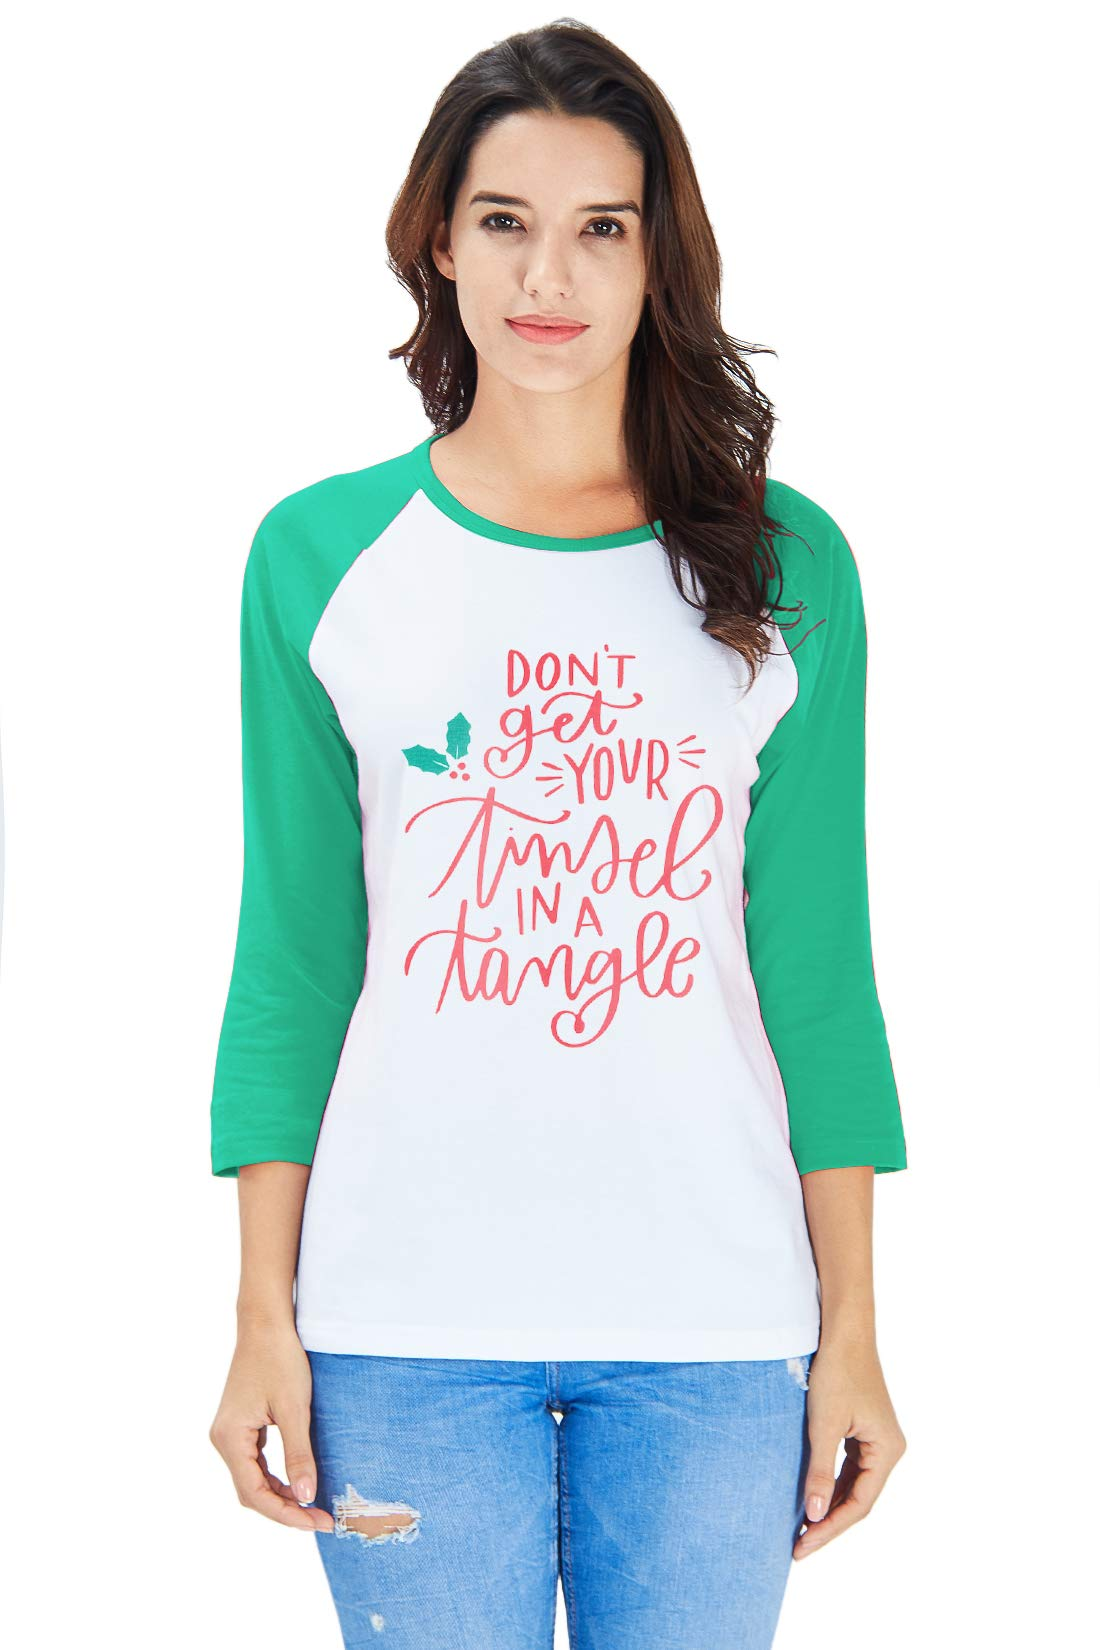 AIDEAONE Women Ladies Christmas Green Prints 3/4 Sleeve Raglan Casual T-Shirt Tops